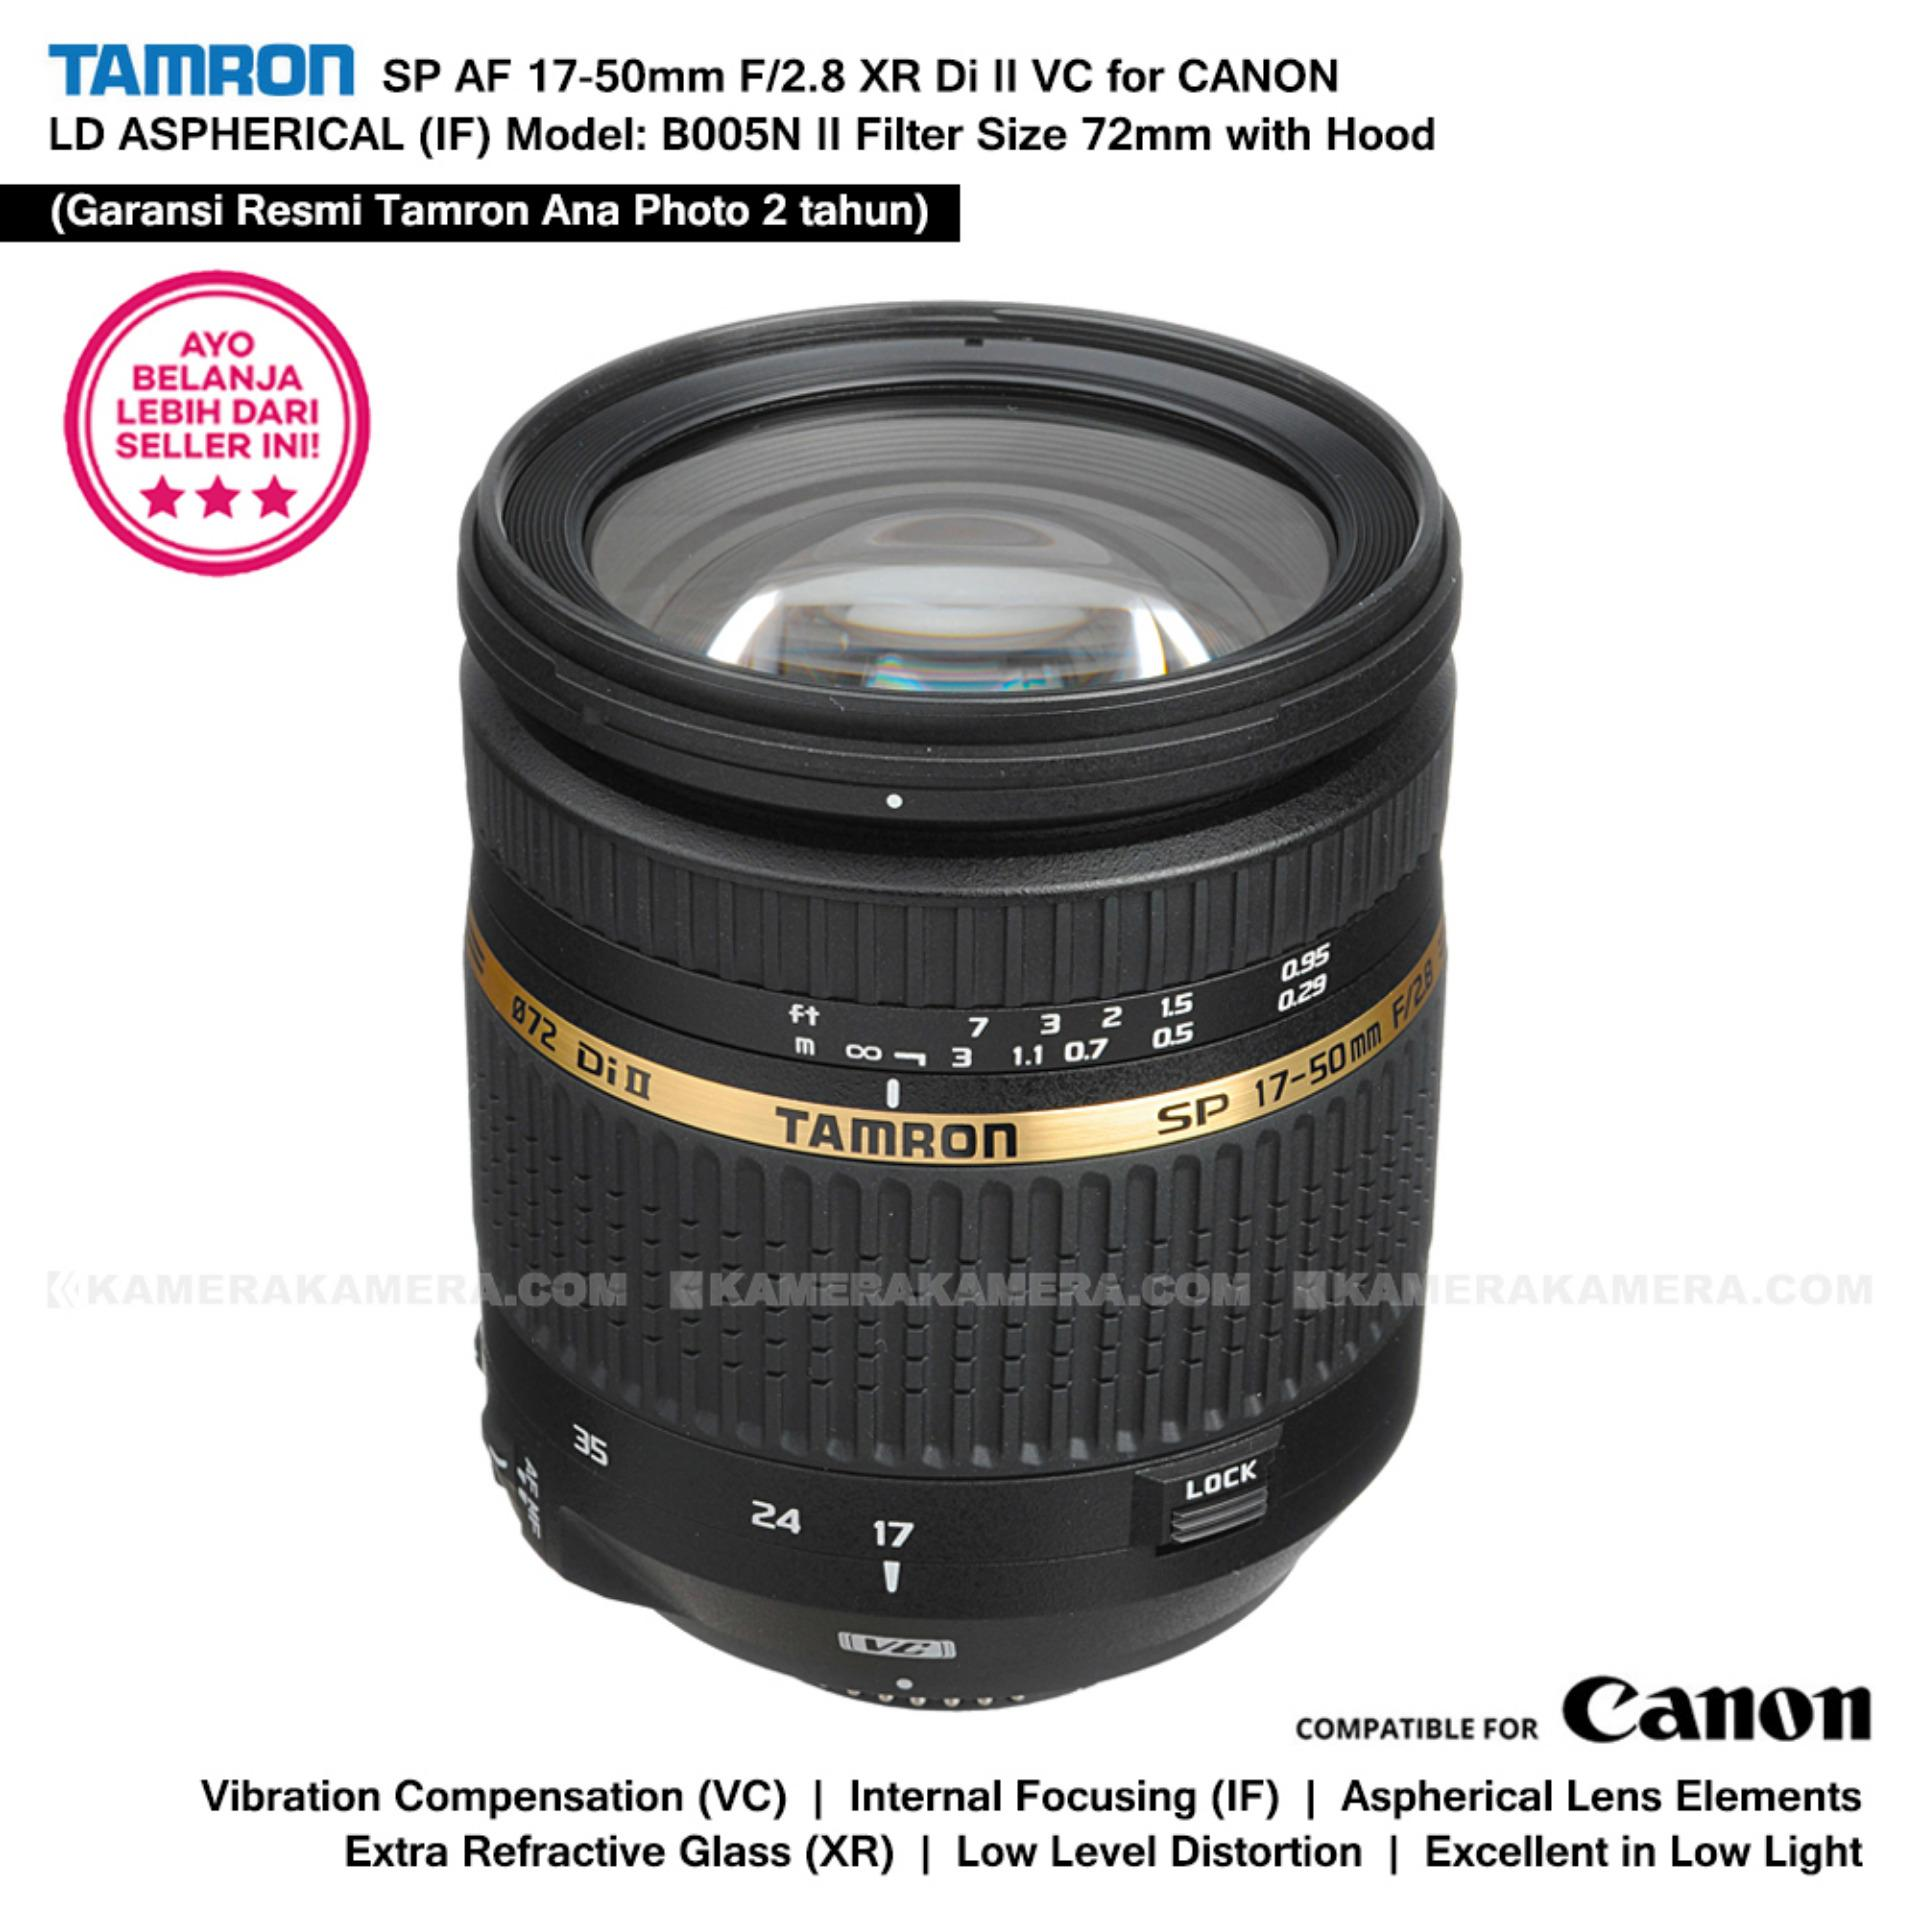 TAMRON SP AF 17-50mm F/2.8 XR Di II VC for CANON LD ASPHERICAL (IF) Model: B005N II with Lens Hood (Garansi Resmi Tamron Ana Photo 2 tahun)